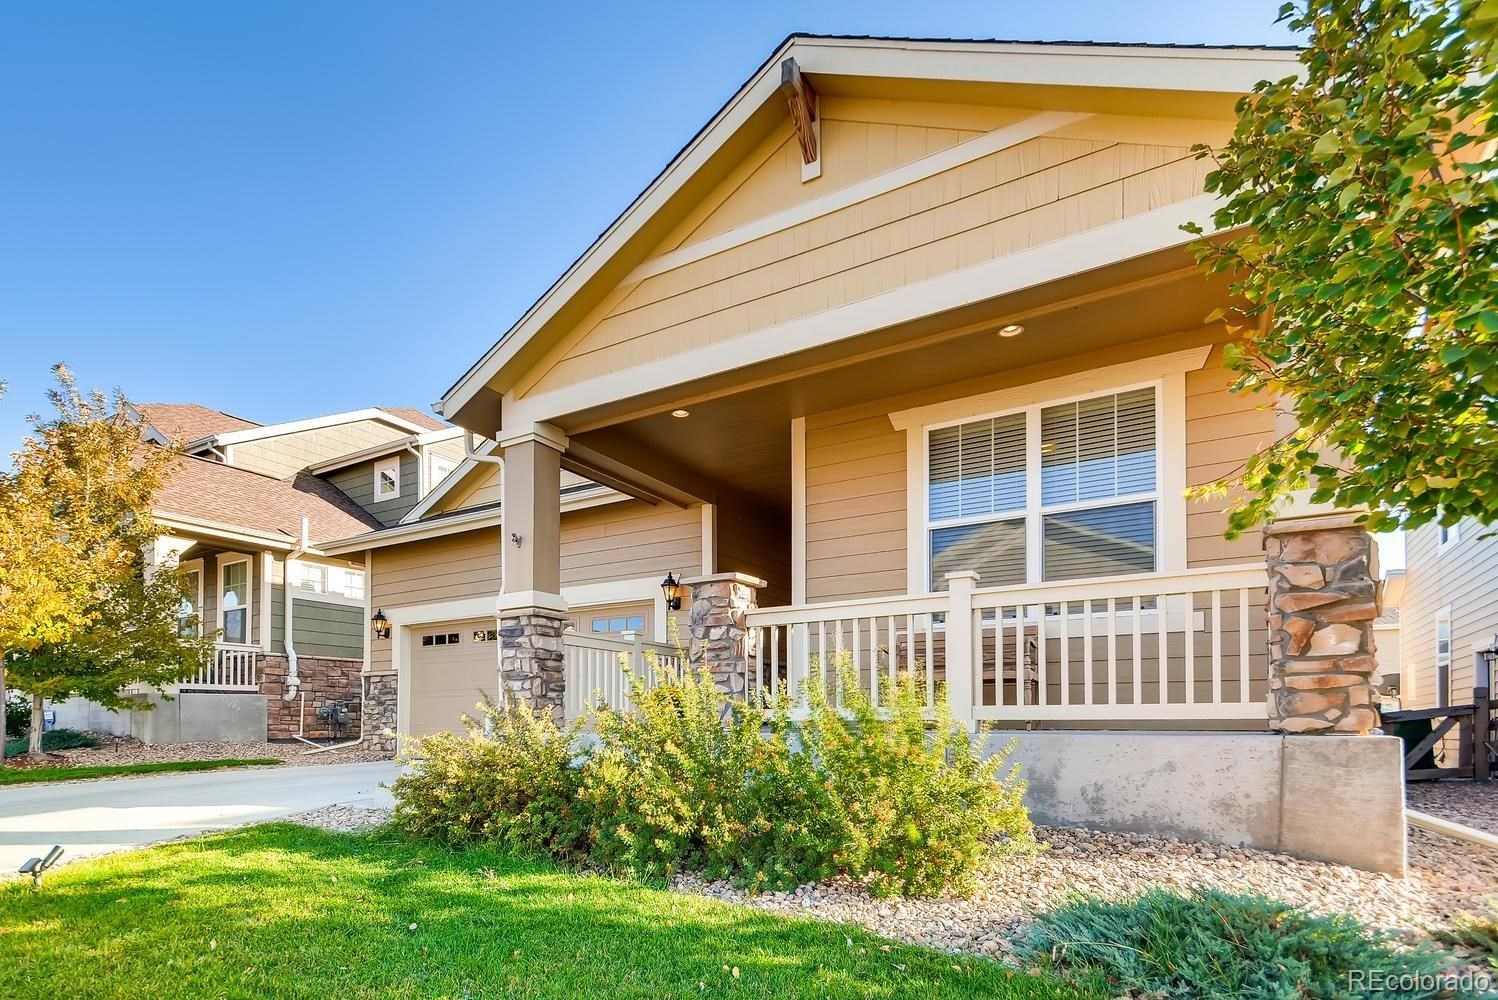 MLS# 9346696 - 3 - 22888 E Saratoga Place, Aurora, CO 80015